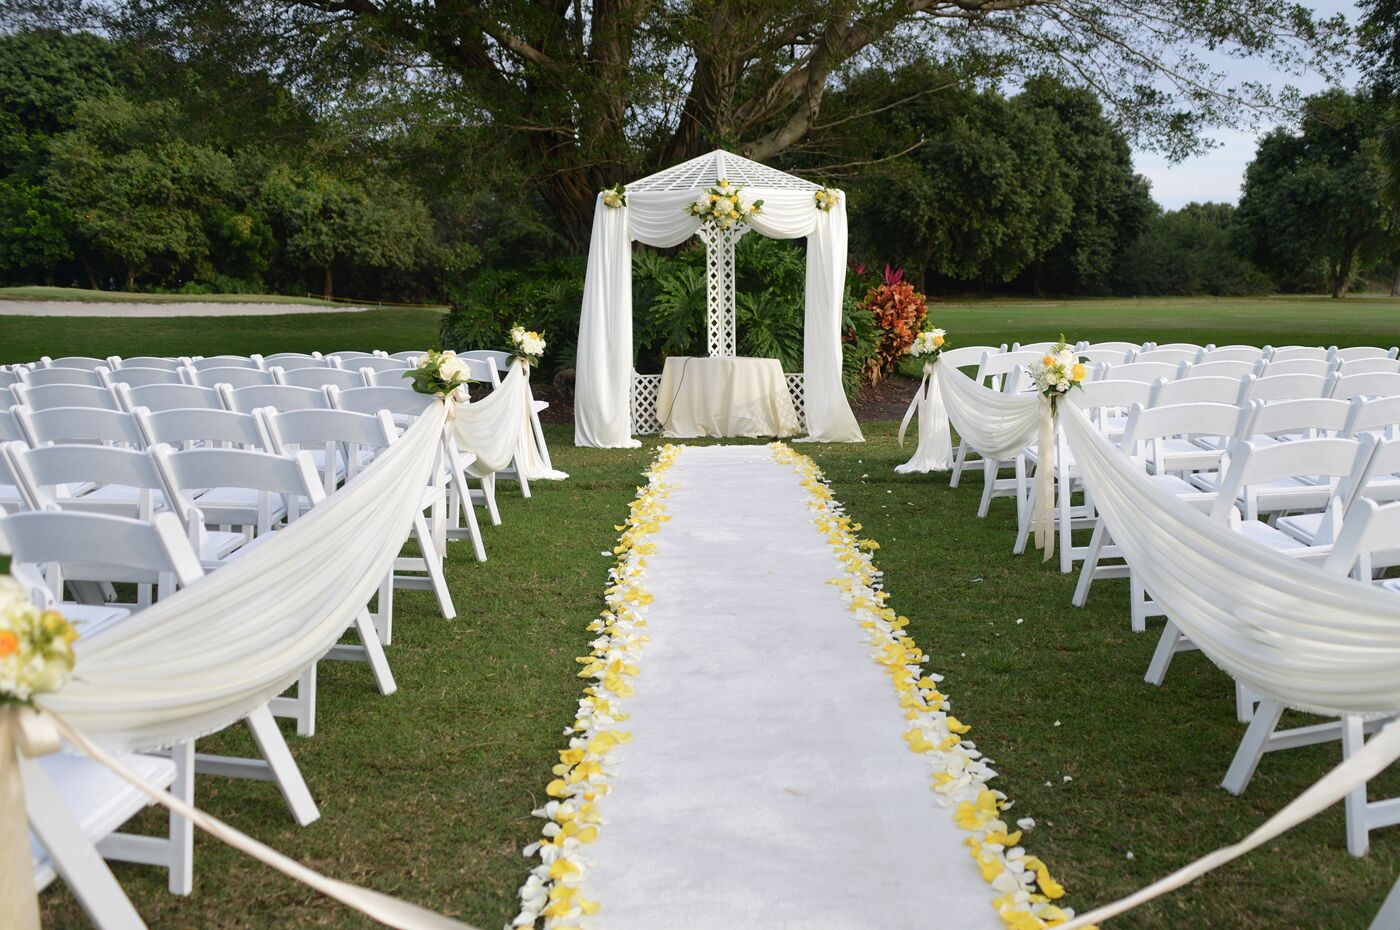 R Beach Golf Course Wedding Price The Best Beaches In World